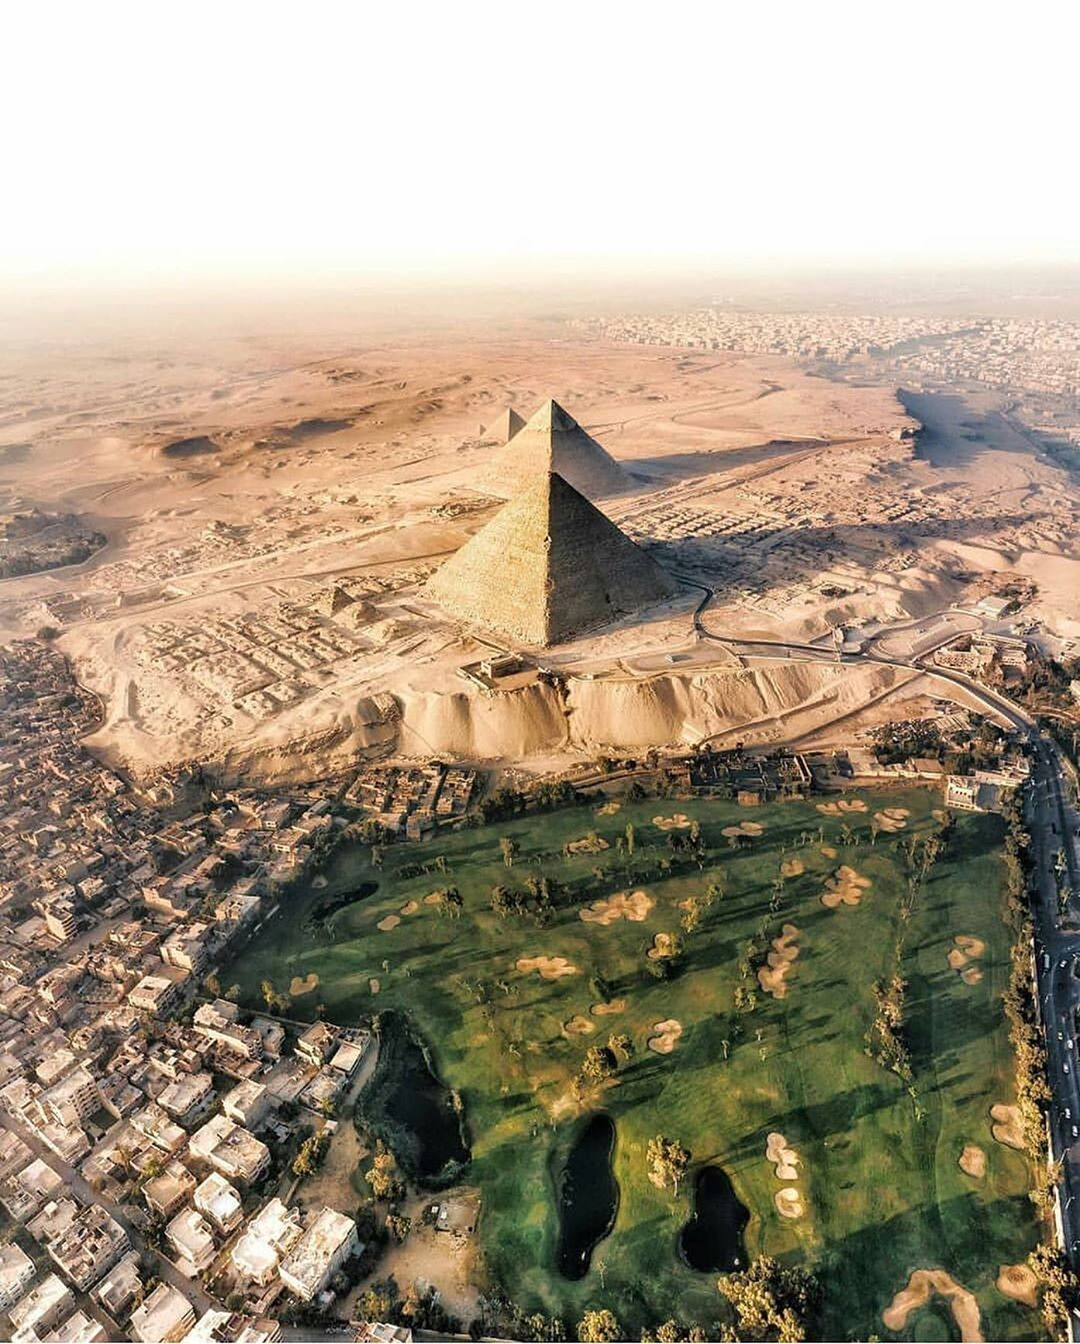 Travel Vacation Nature V Instagram When Human Creation Meets Nature Which Is Your Favourite View Of Egypt 1 Pyramids Of Giza Great Pyramid Of Giza Egypt